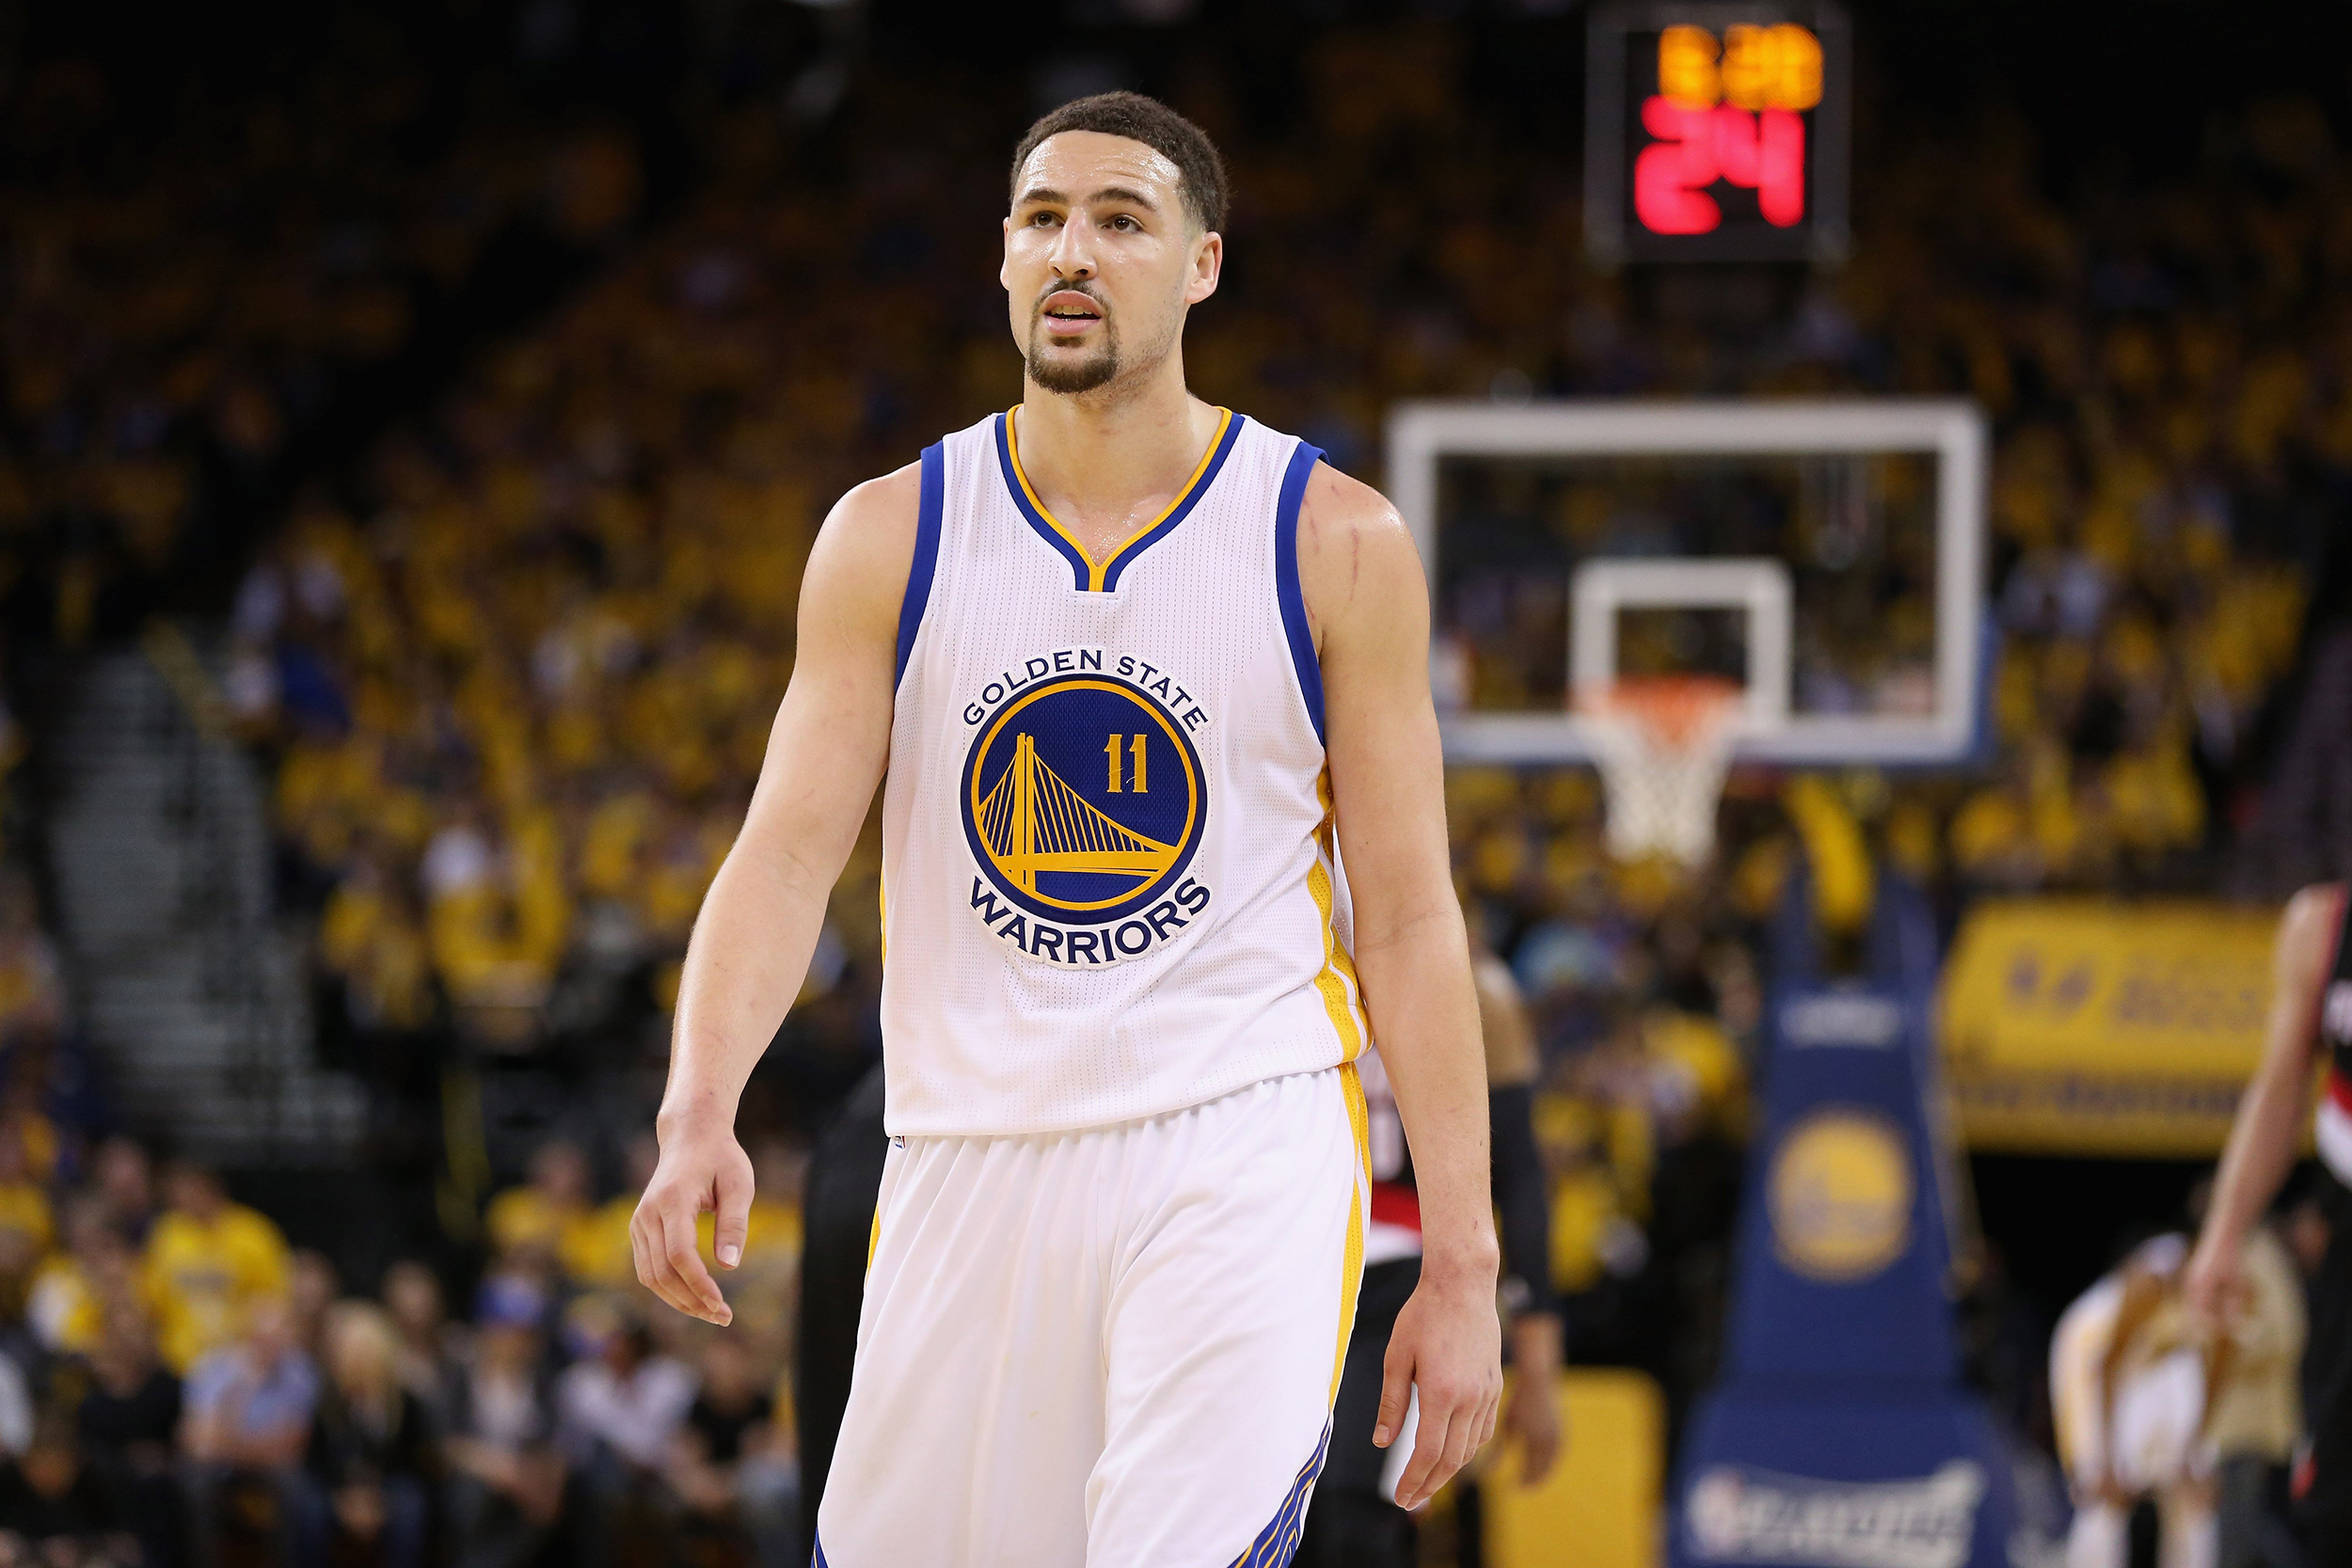 Steph Curry Kevin Durant Others Share The Impact Of Black History On Their Careers